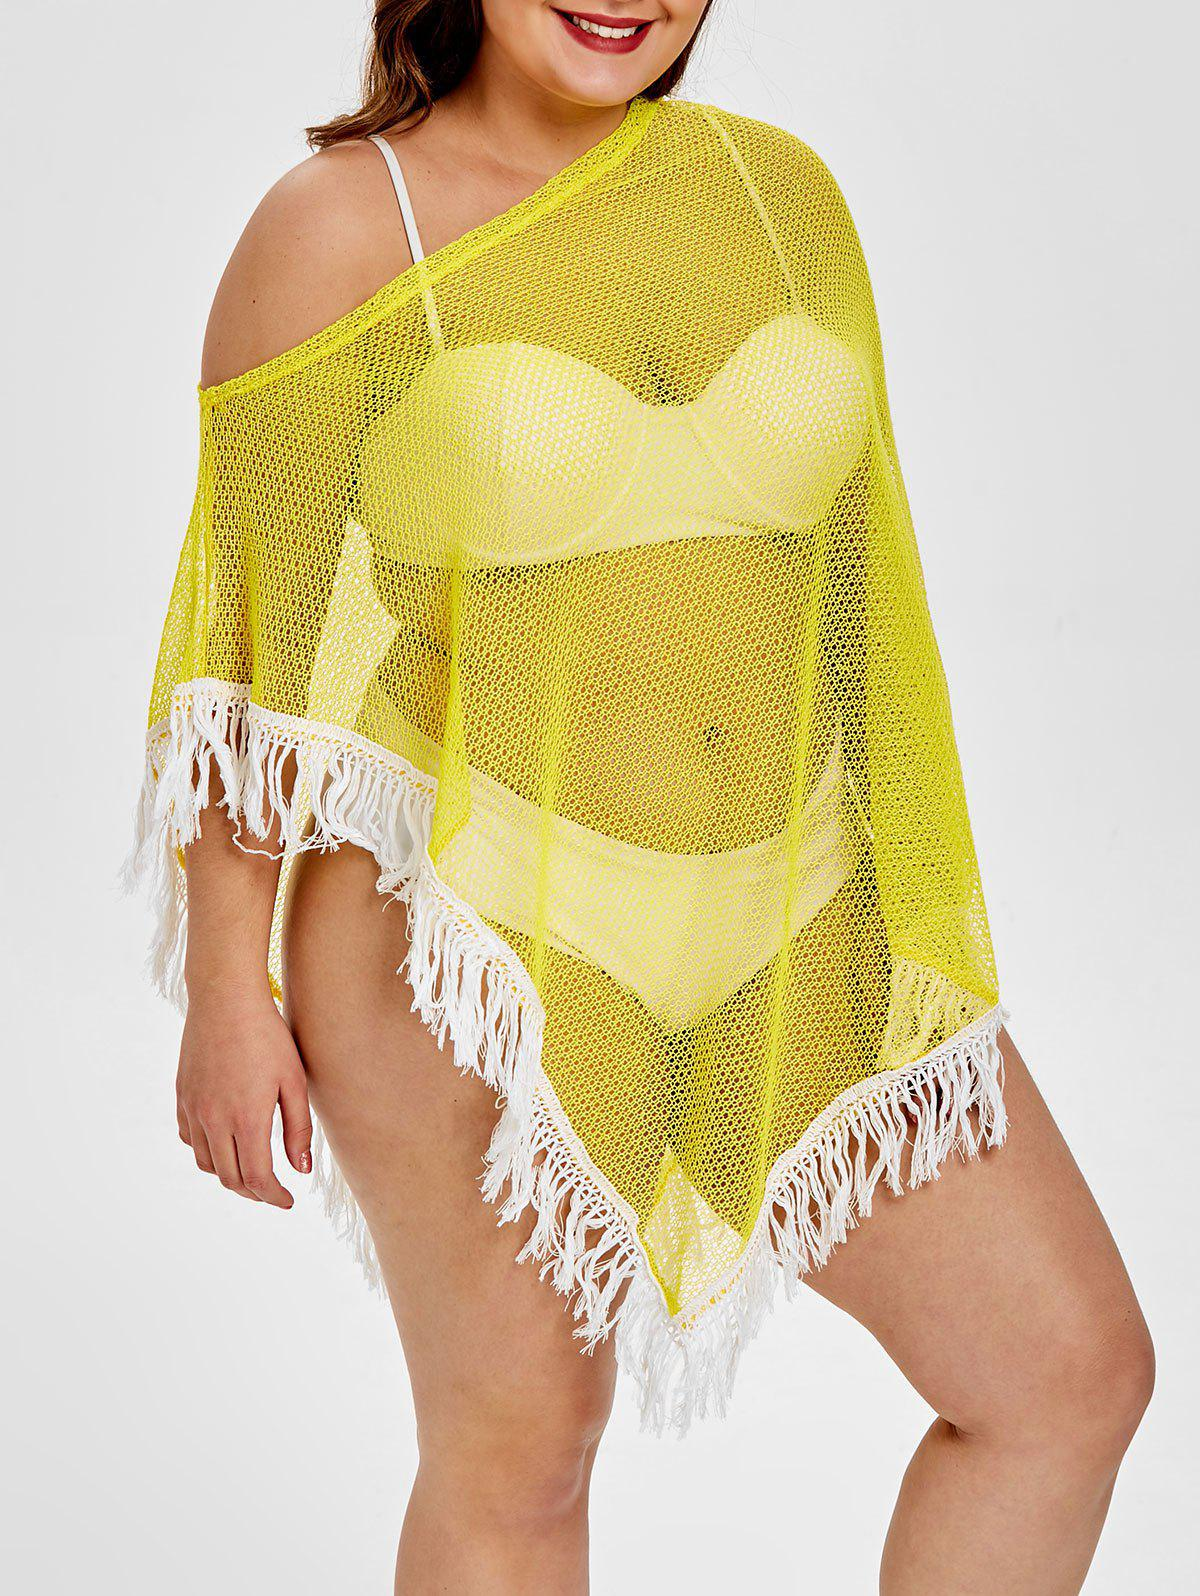 683e0a4d767 26% OFF] Sheer Knit Plus Size Fringed Cover Up | Rosegal